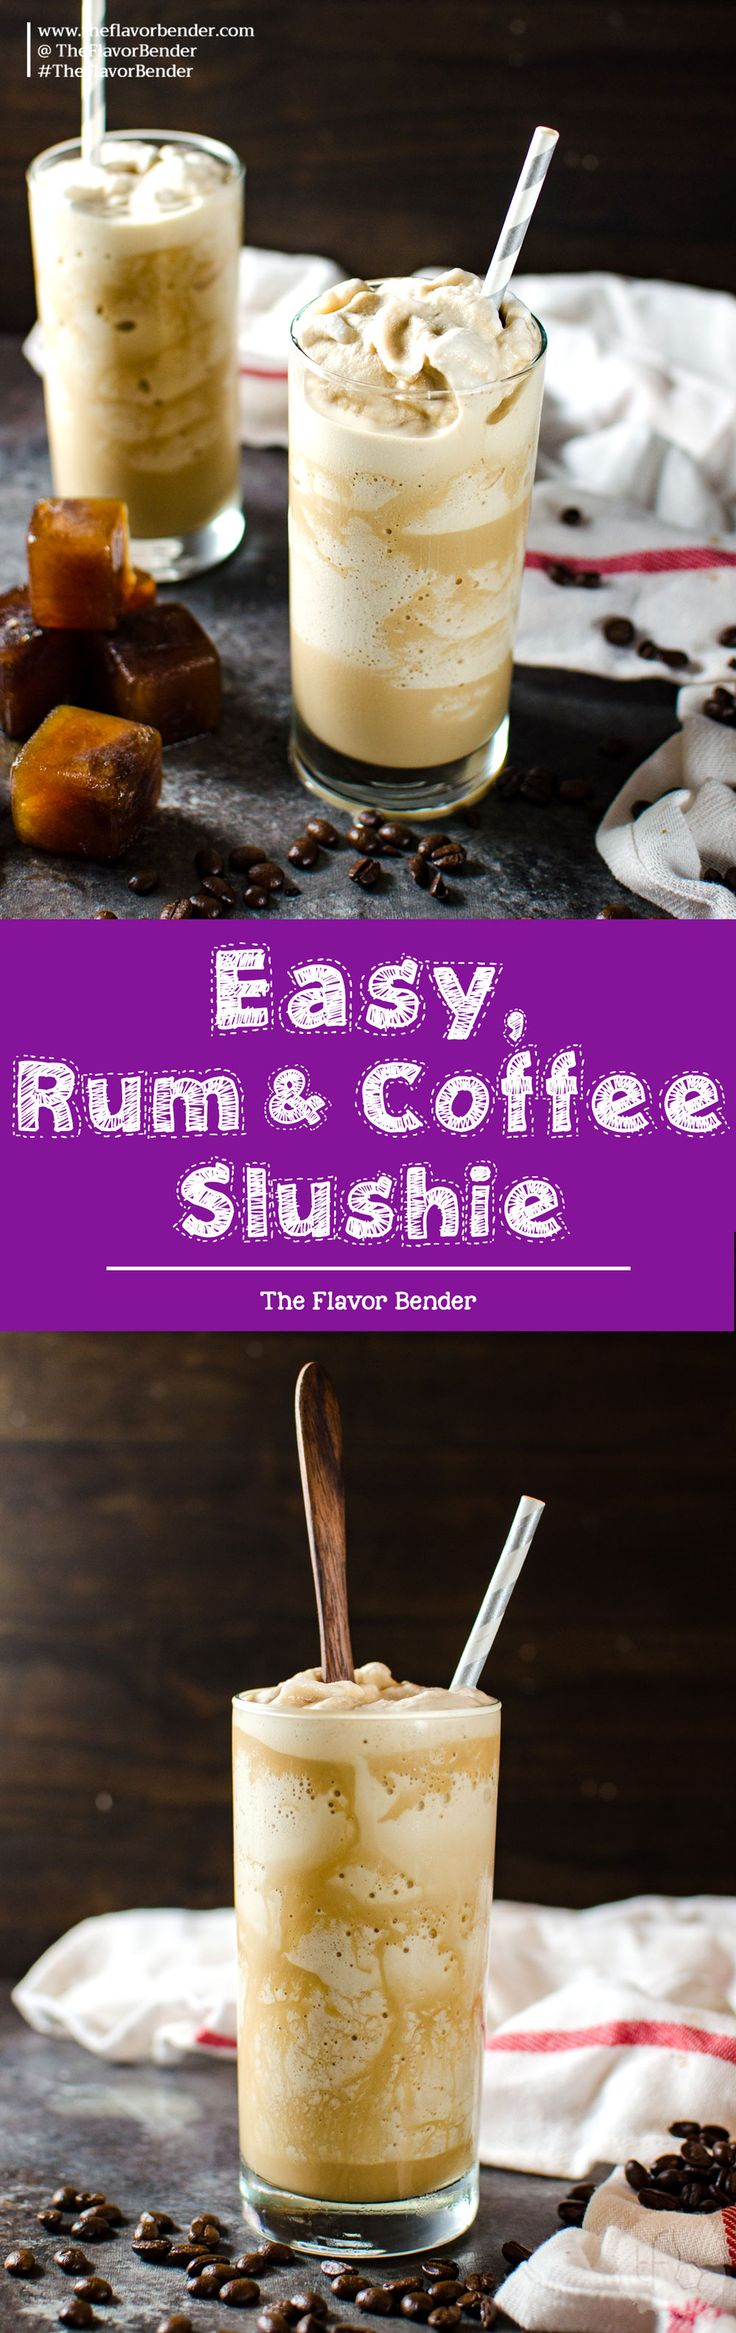 Rum Coffee Slushie - Learn how to make coffee slushies, with tips on making perfect coffee slushies, and how to customize it for you! I love making mine a boozy coffee slushie, with the perfect amount of rum! via @theflavorbender